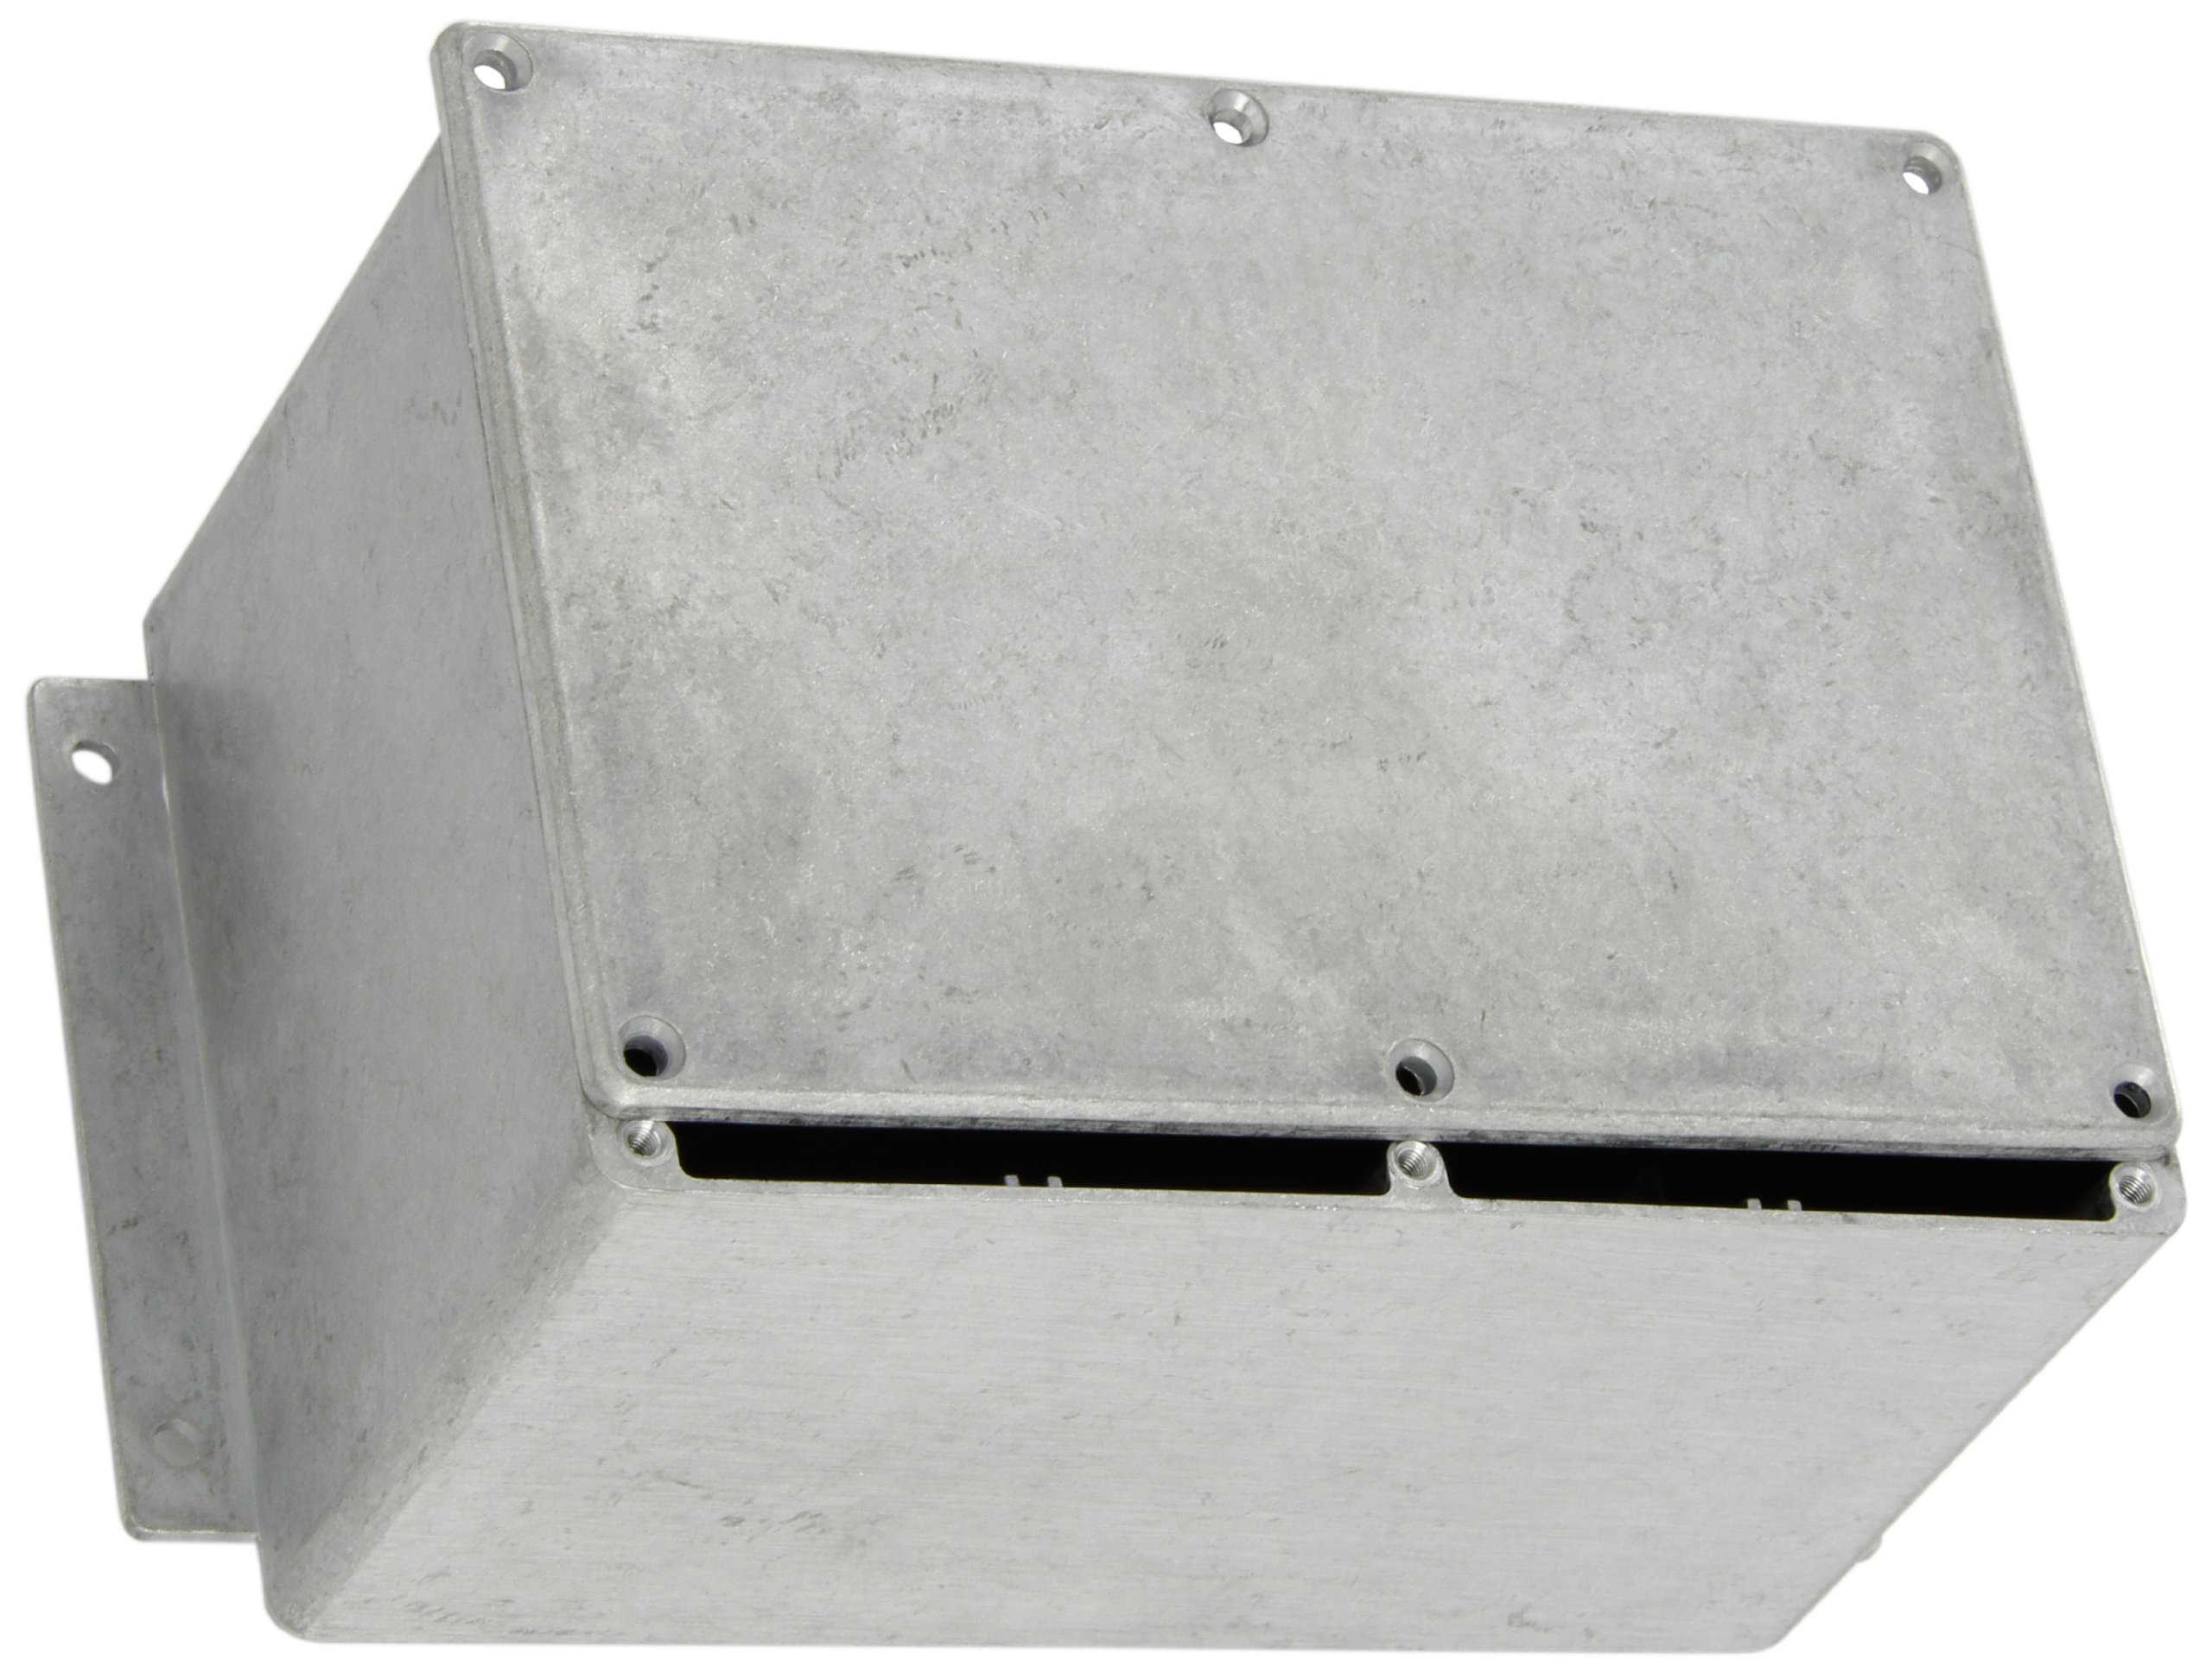 BUD Industries CN-6710 Die Cast Aluminum Enclosure with Mounting Bracket, 6-49/64'' Length x 4-49/64'' Width x 4-13/64'' Height, Natural Finish